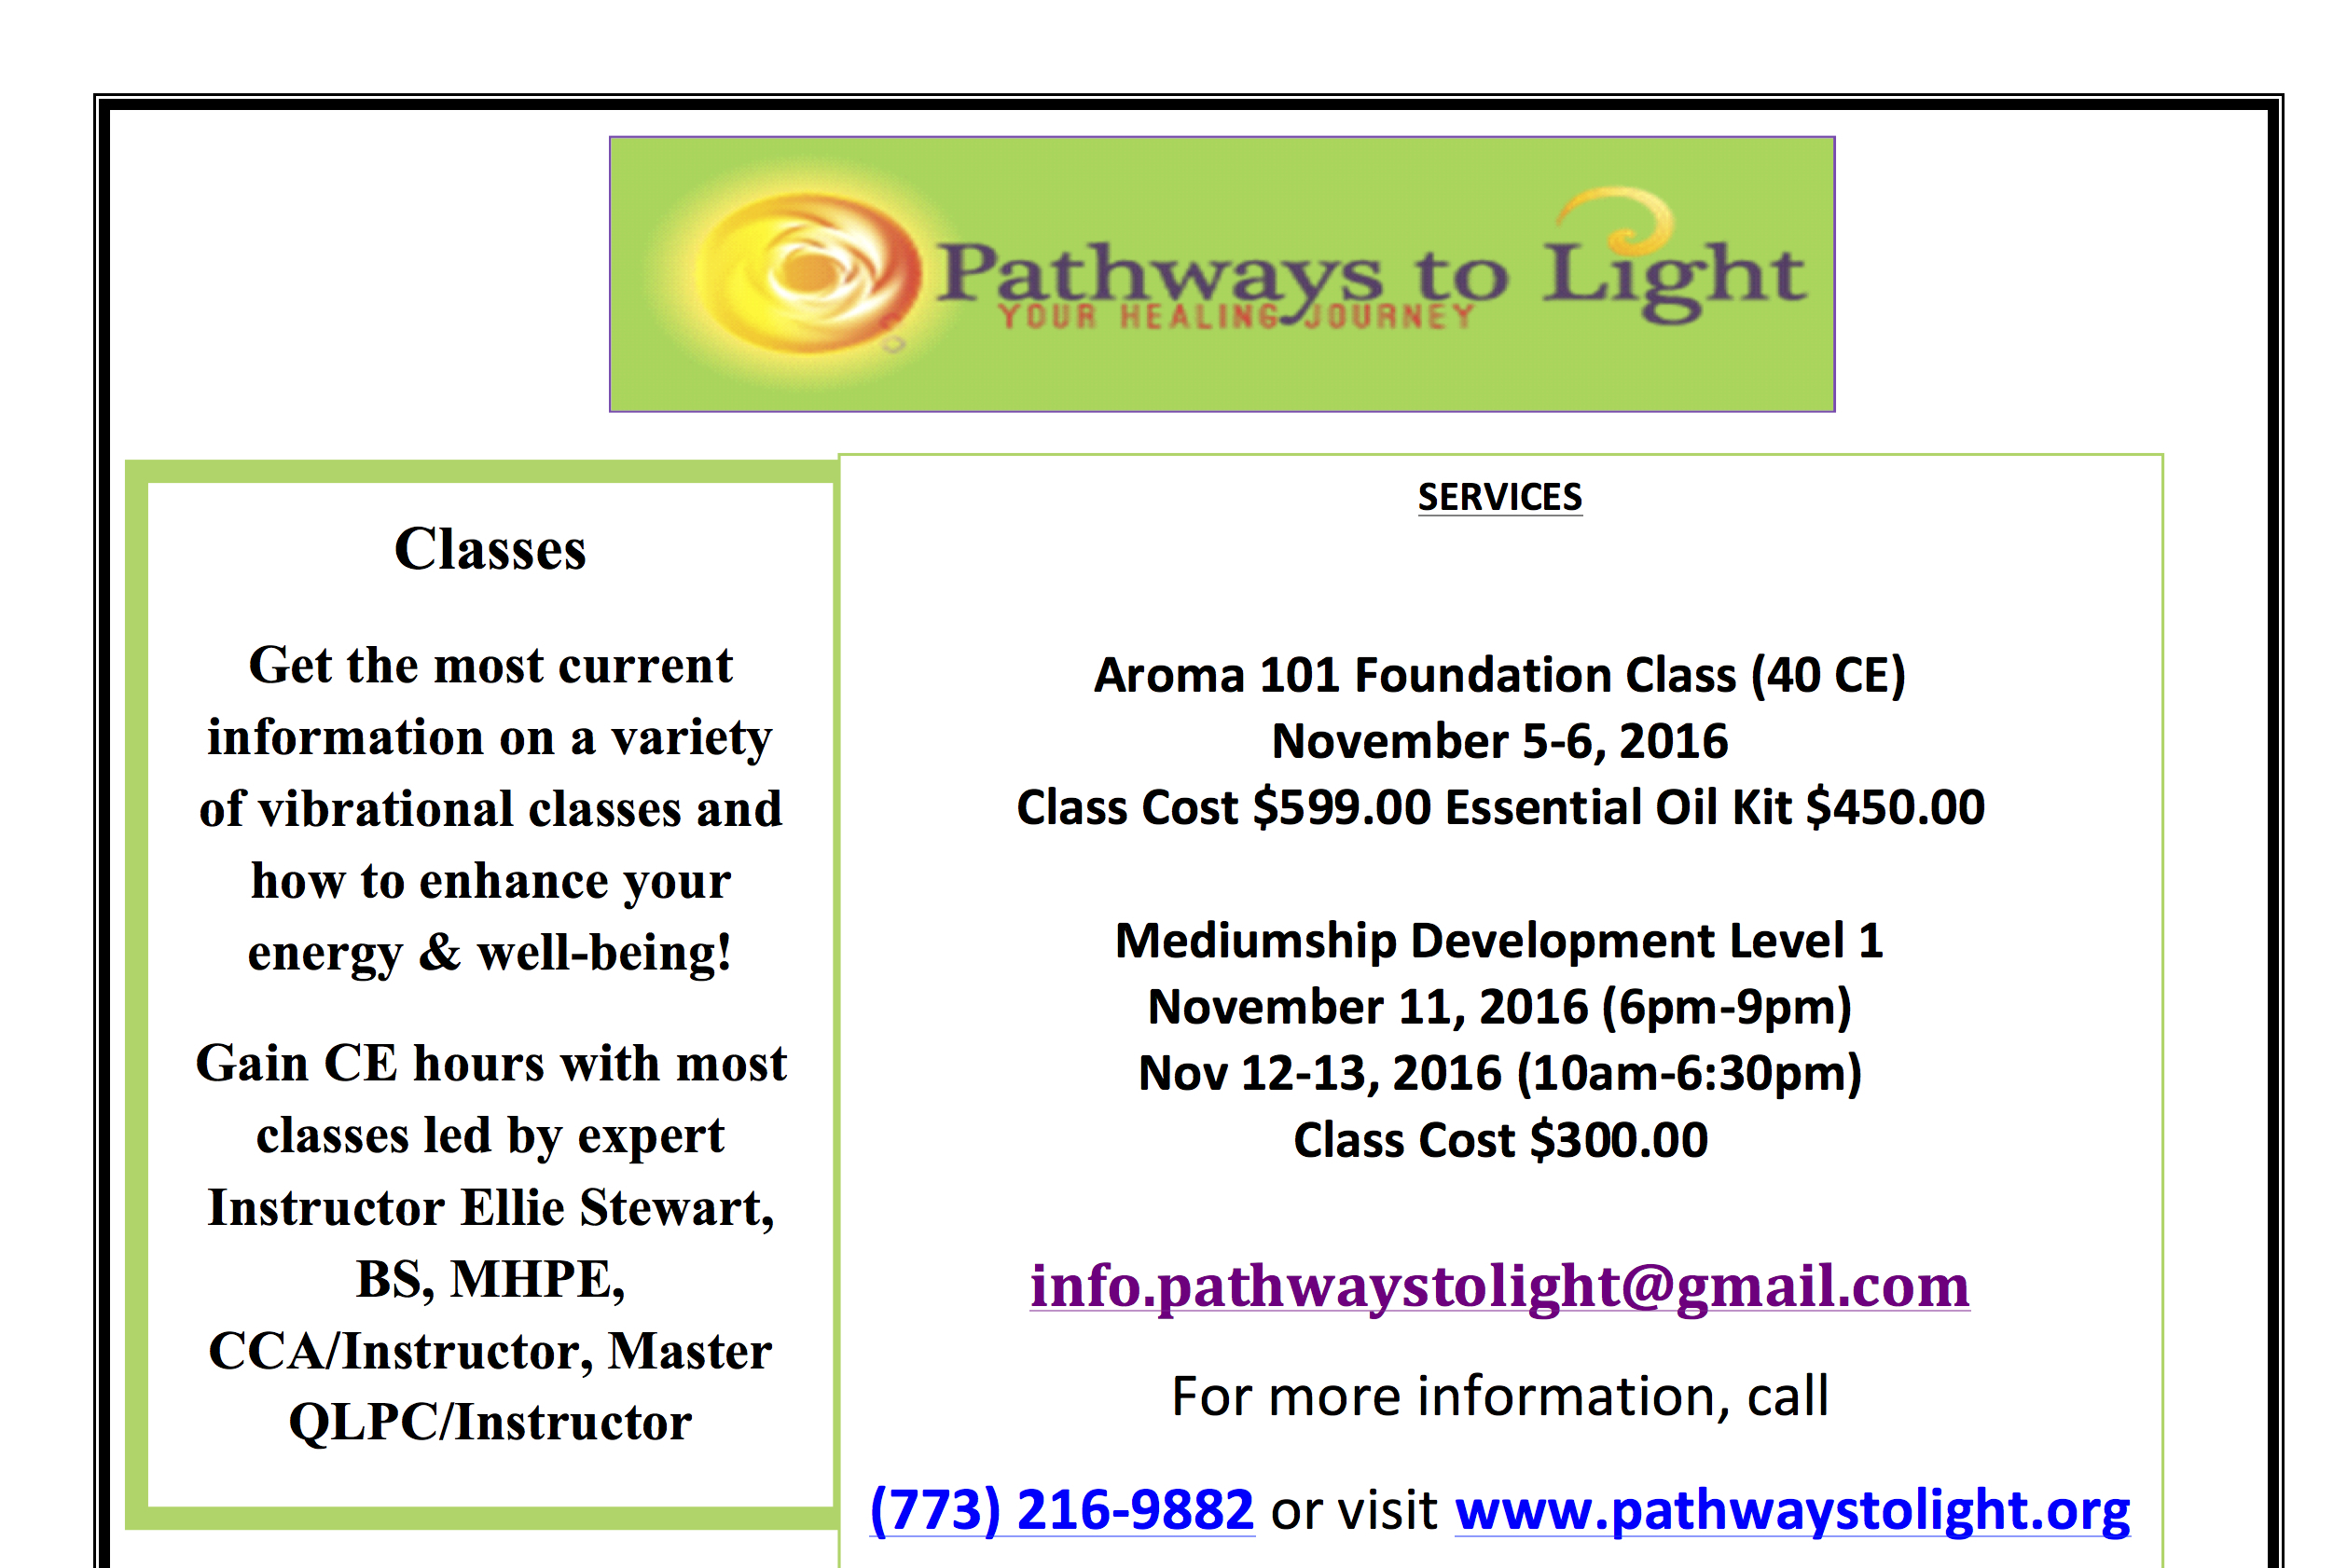 pathways-to-light-jpeg